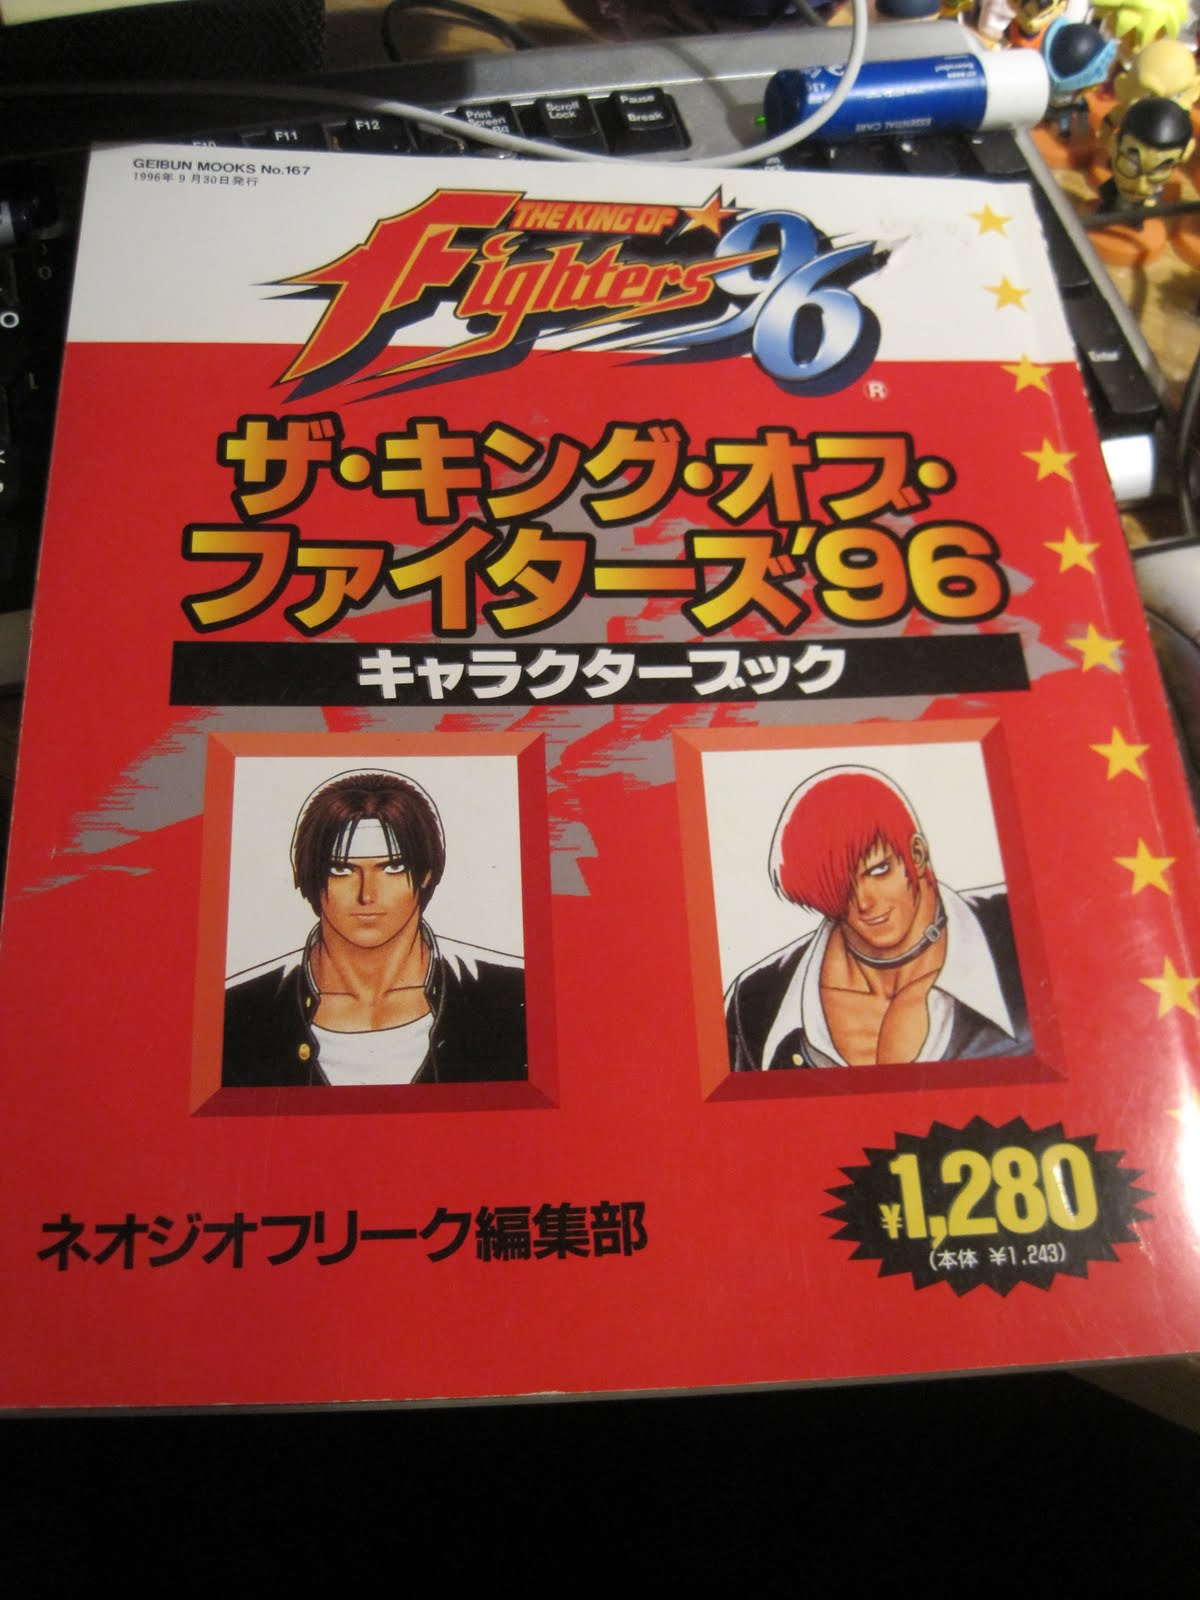 King Of Fighters Uk Old Snk Goods From Japan Pt 7 King Of